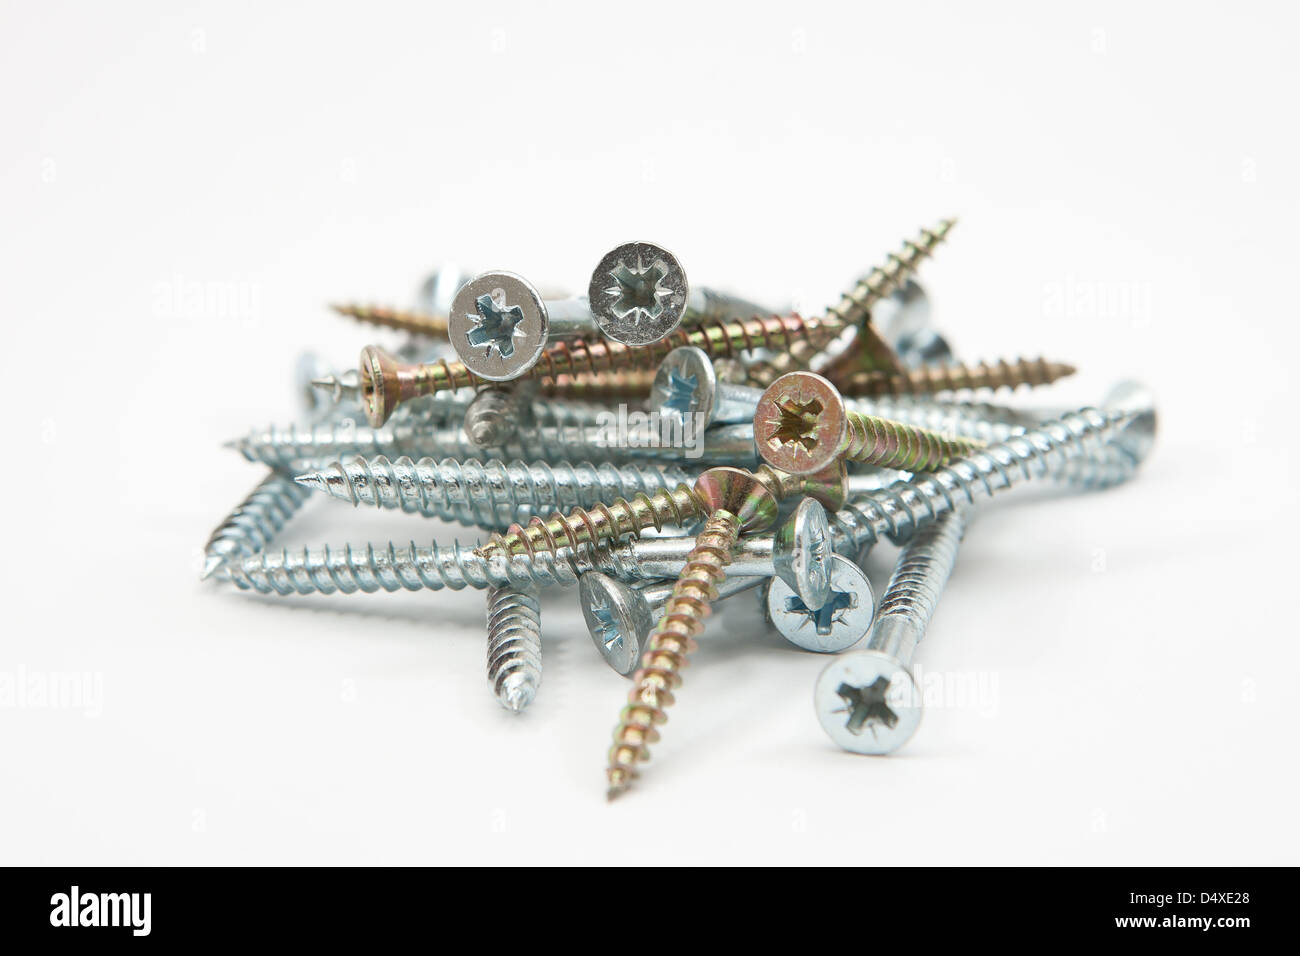 Wood screws for DIY building use - Stock Image